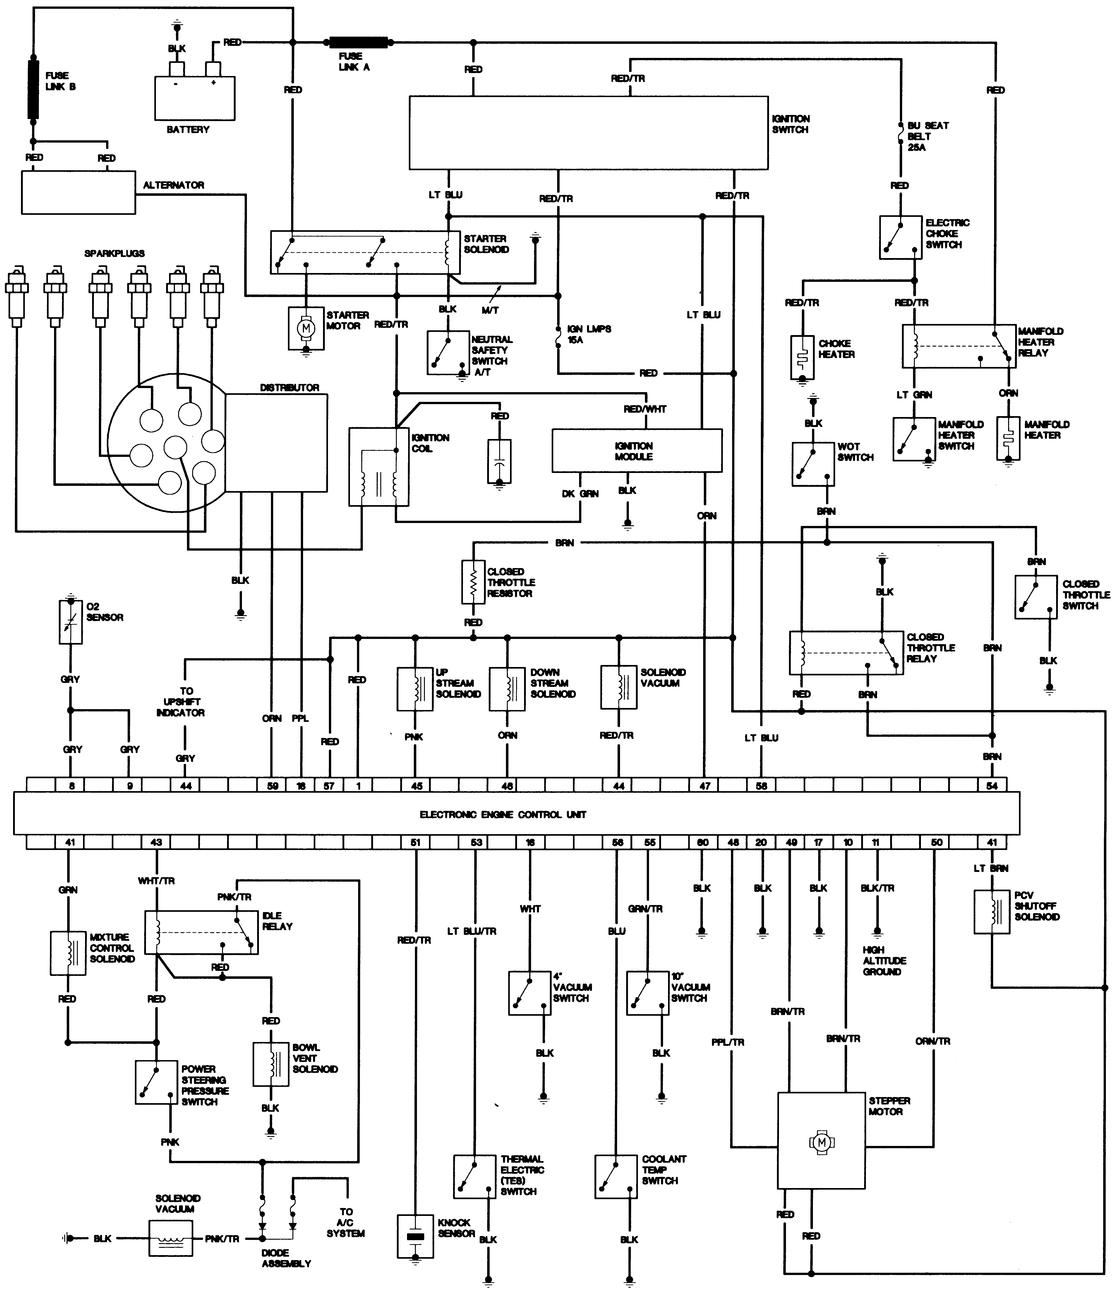 1972 monte carlo ignition wiring diagram also 1982 jeep cj5 wiring